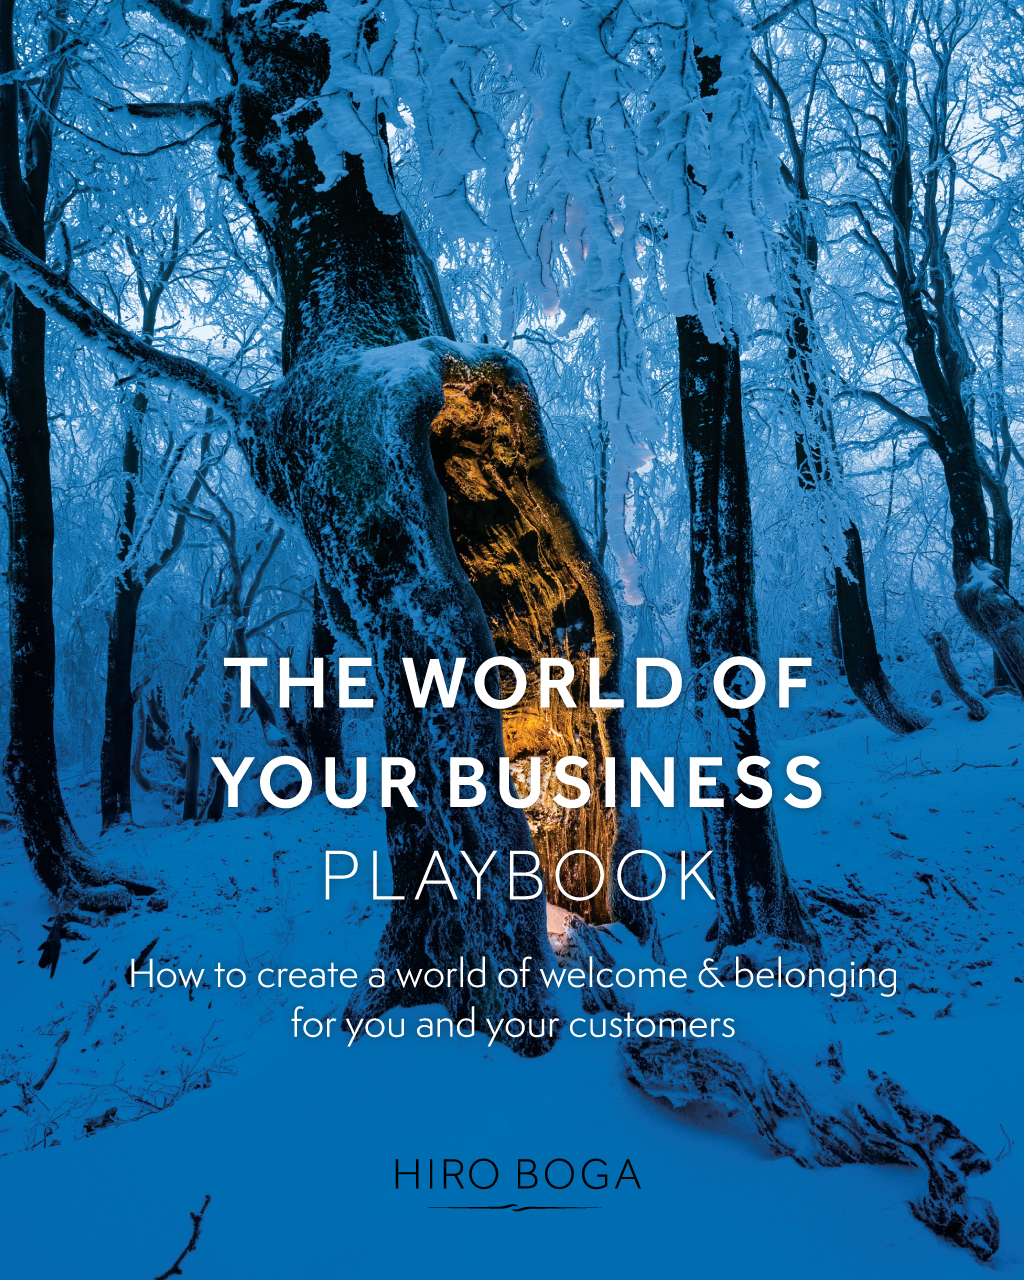 World of Your Business Playbook